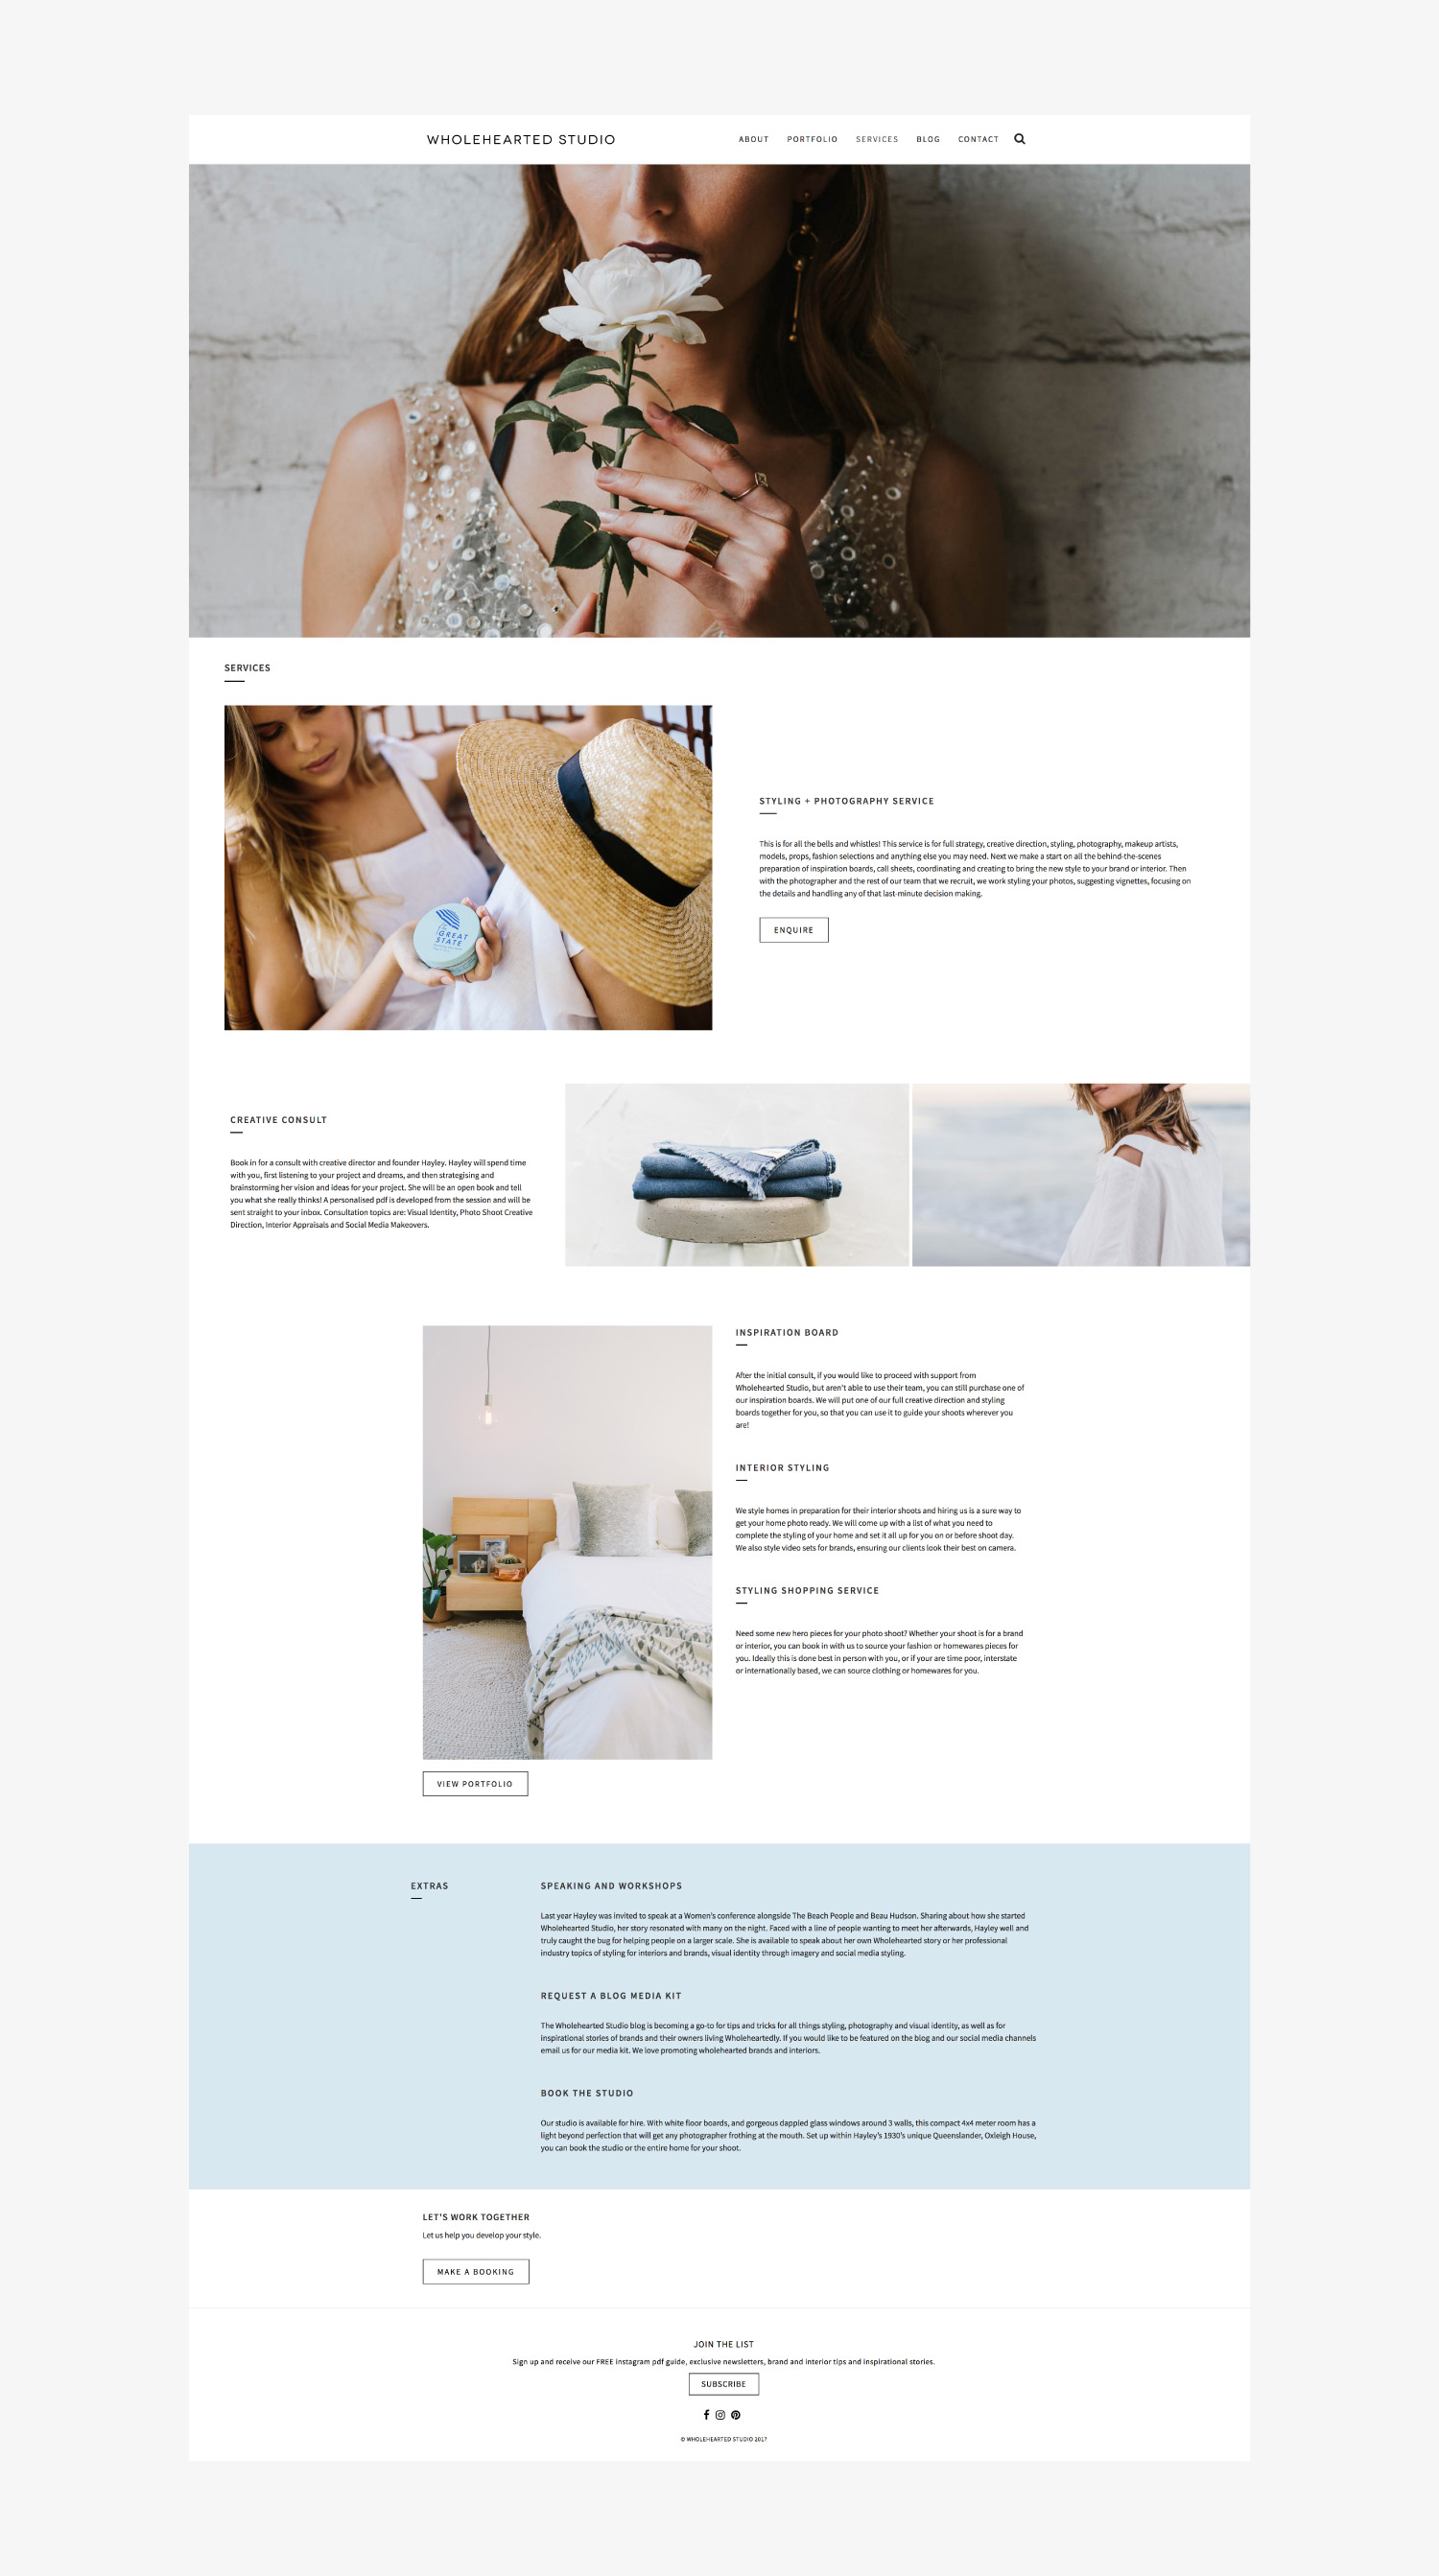 Wholehearted Studio Website Design